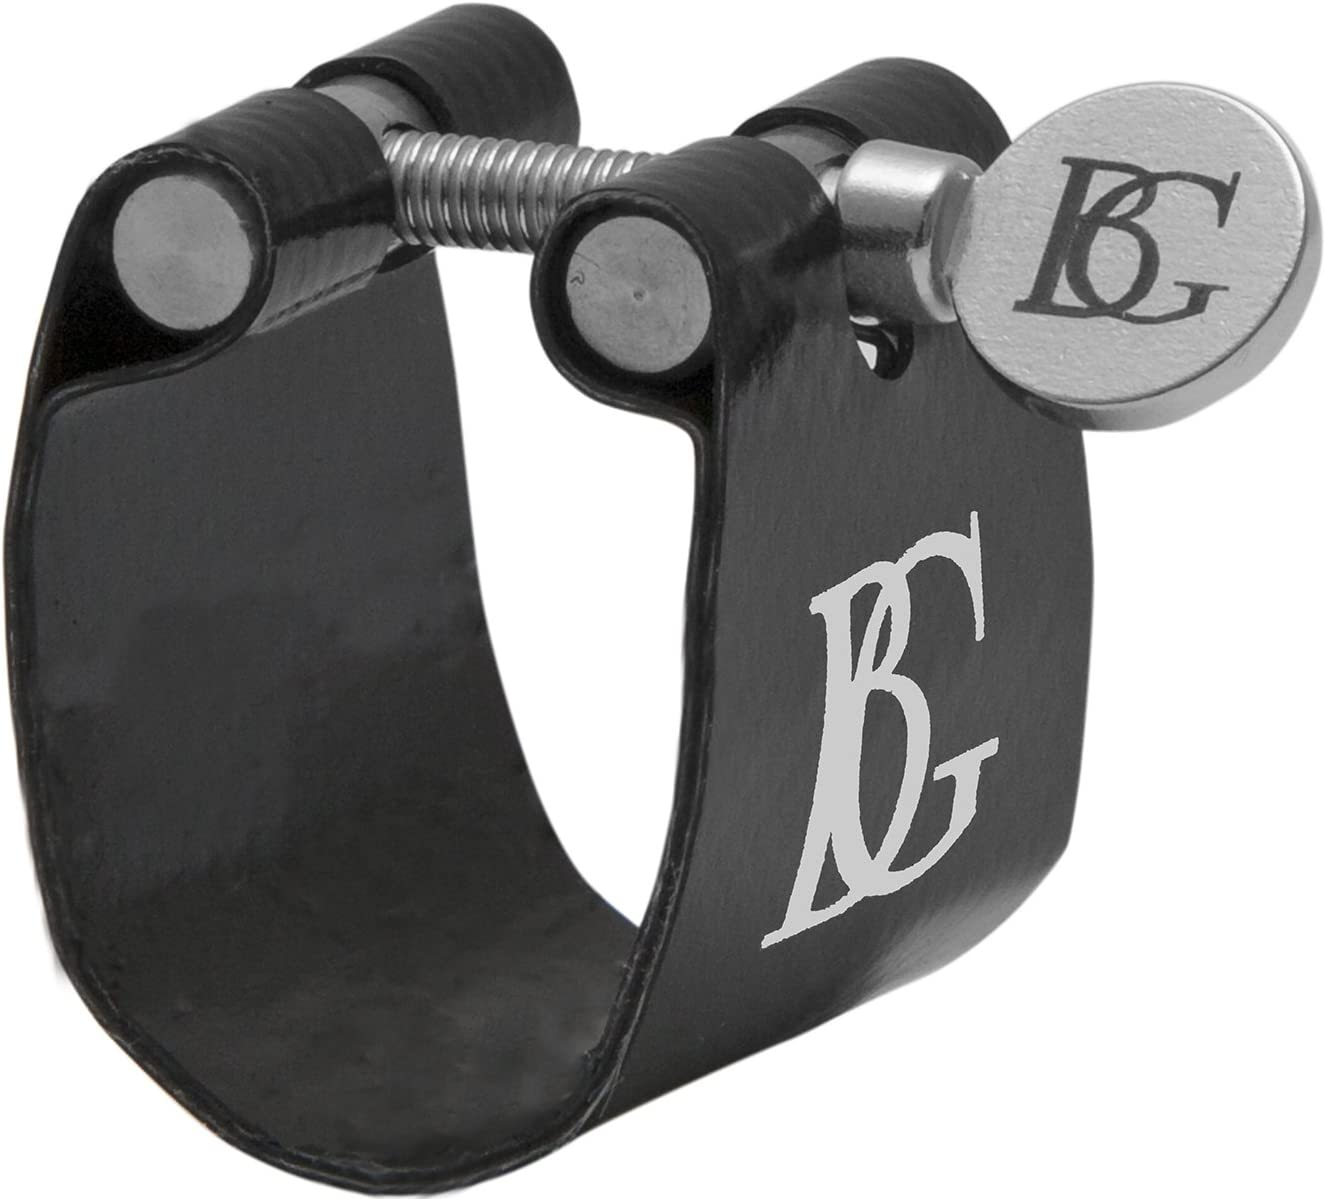 BG LFGB Bb German Clarinet Flex Ligature with Cap